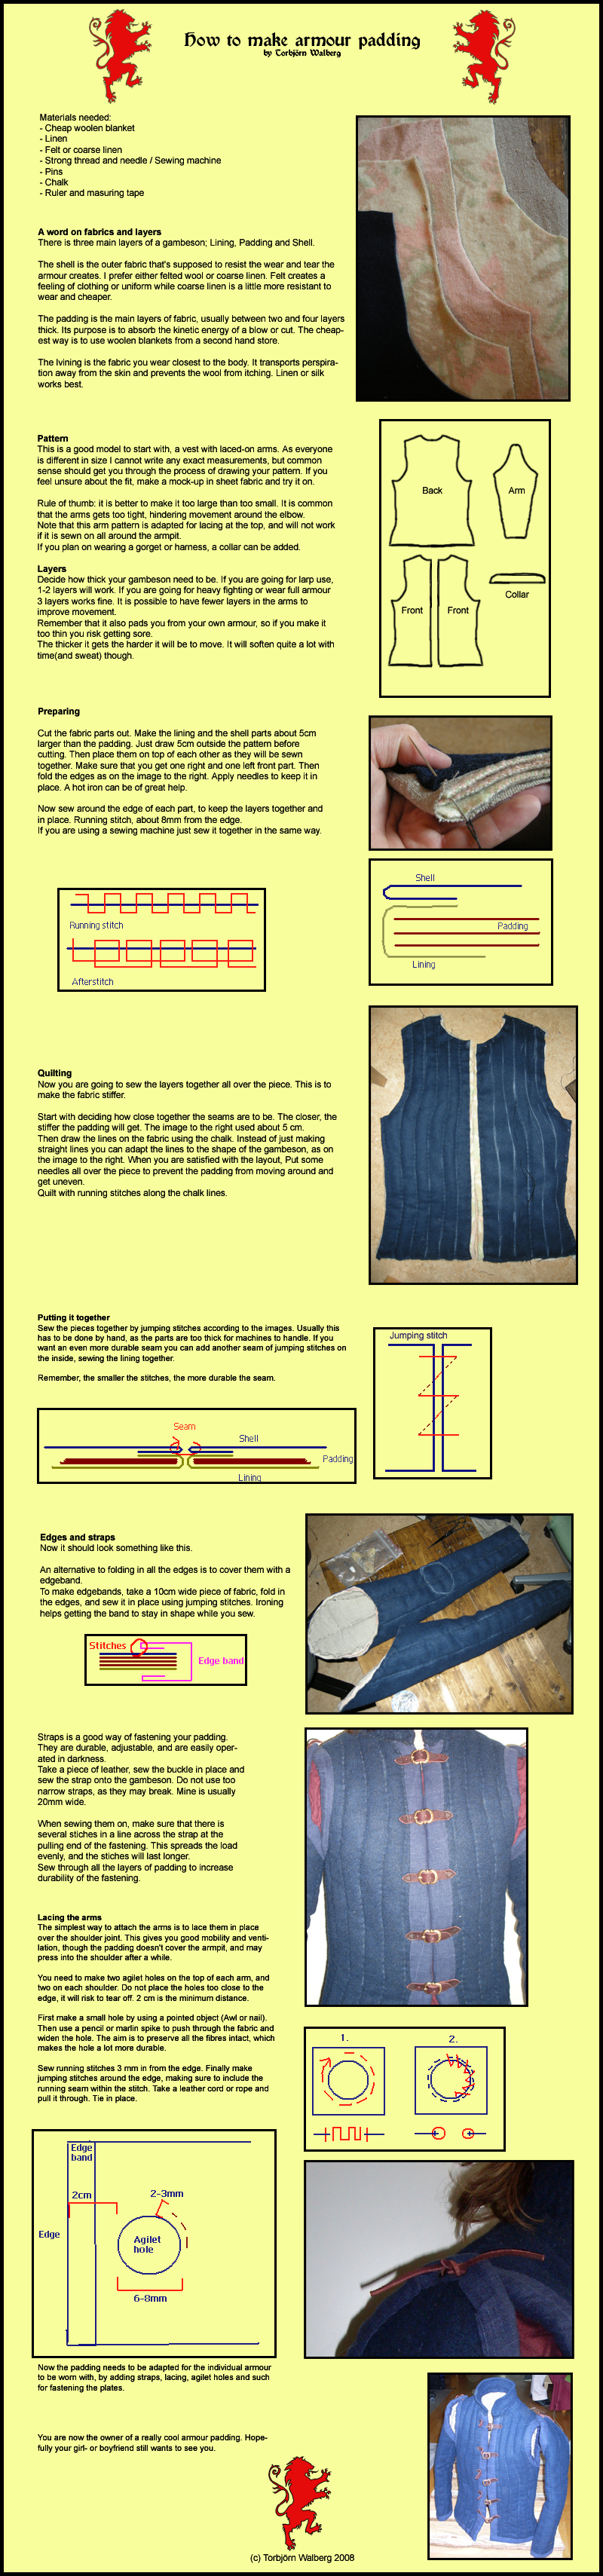 Armour padding instruction by Noctiped